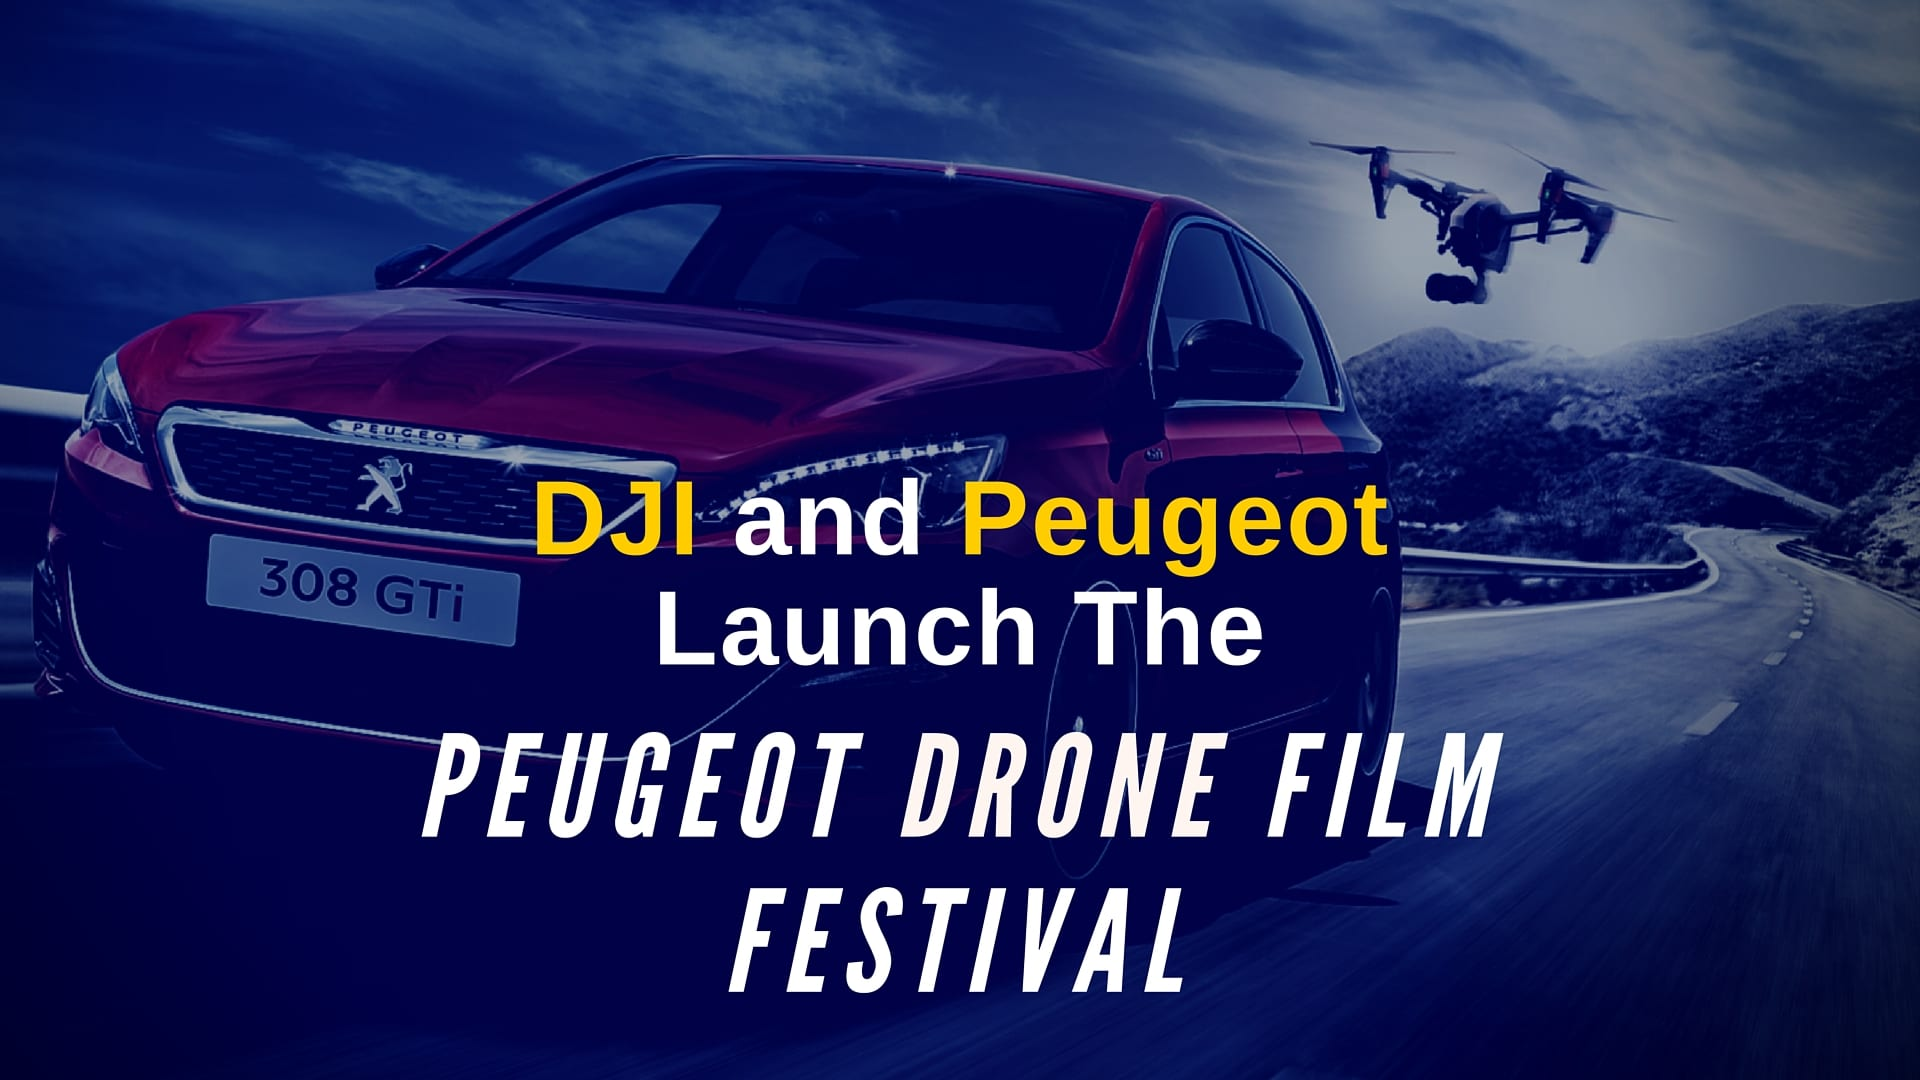 Peugeot Drone Film Festival: DJI And Peugeot Launch A New Drone Film Festival